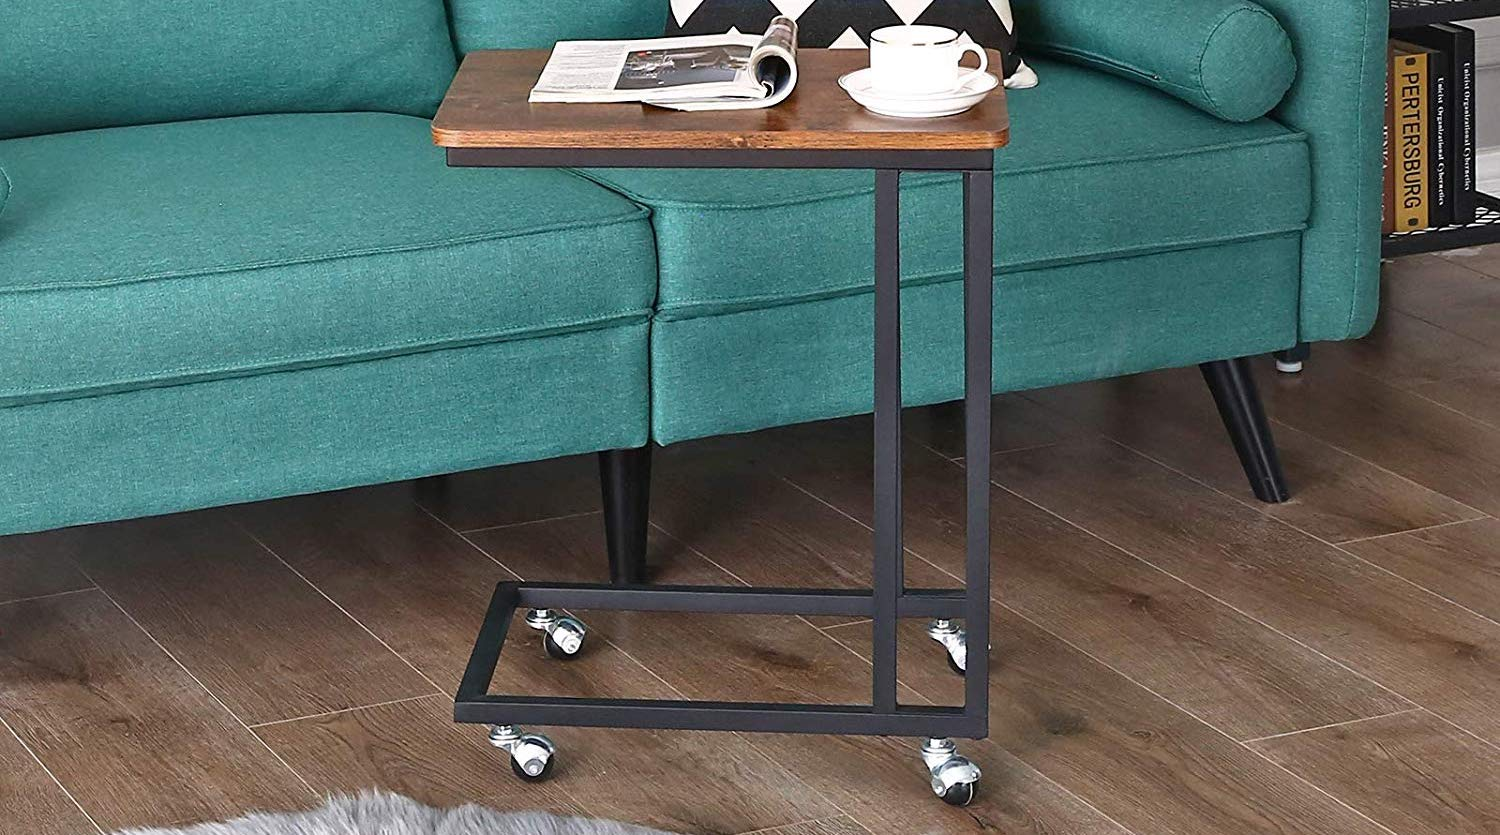 Superb Top 10 Best C Shaped Tables In 2019 Reviews Buyers Guide Pabps2019 Chair Design Images Pabps2019Com